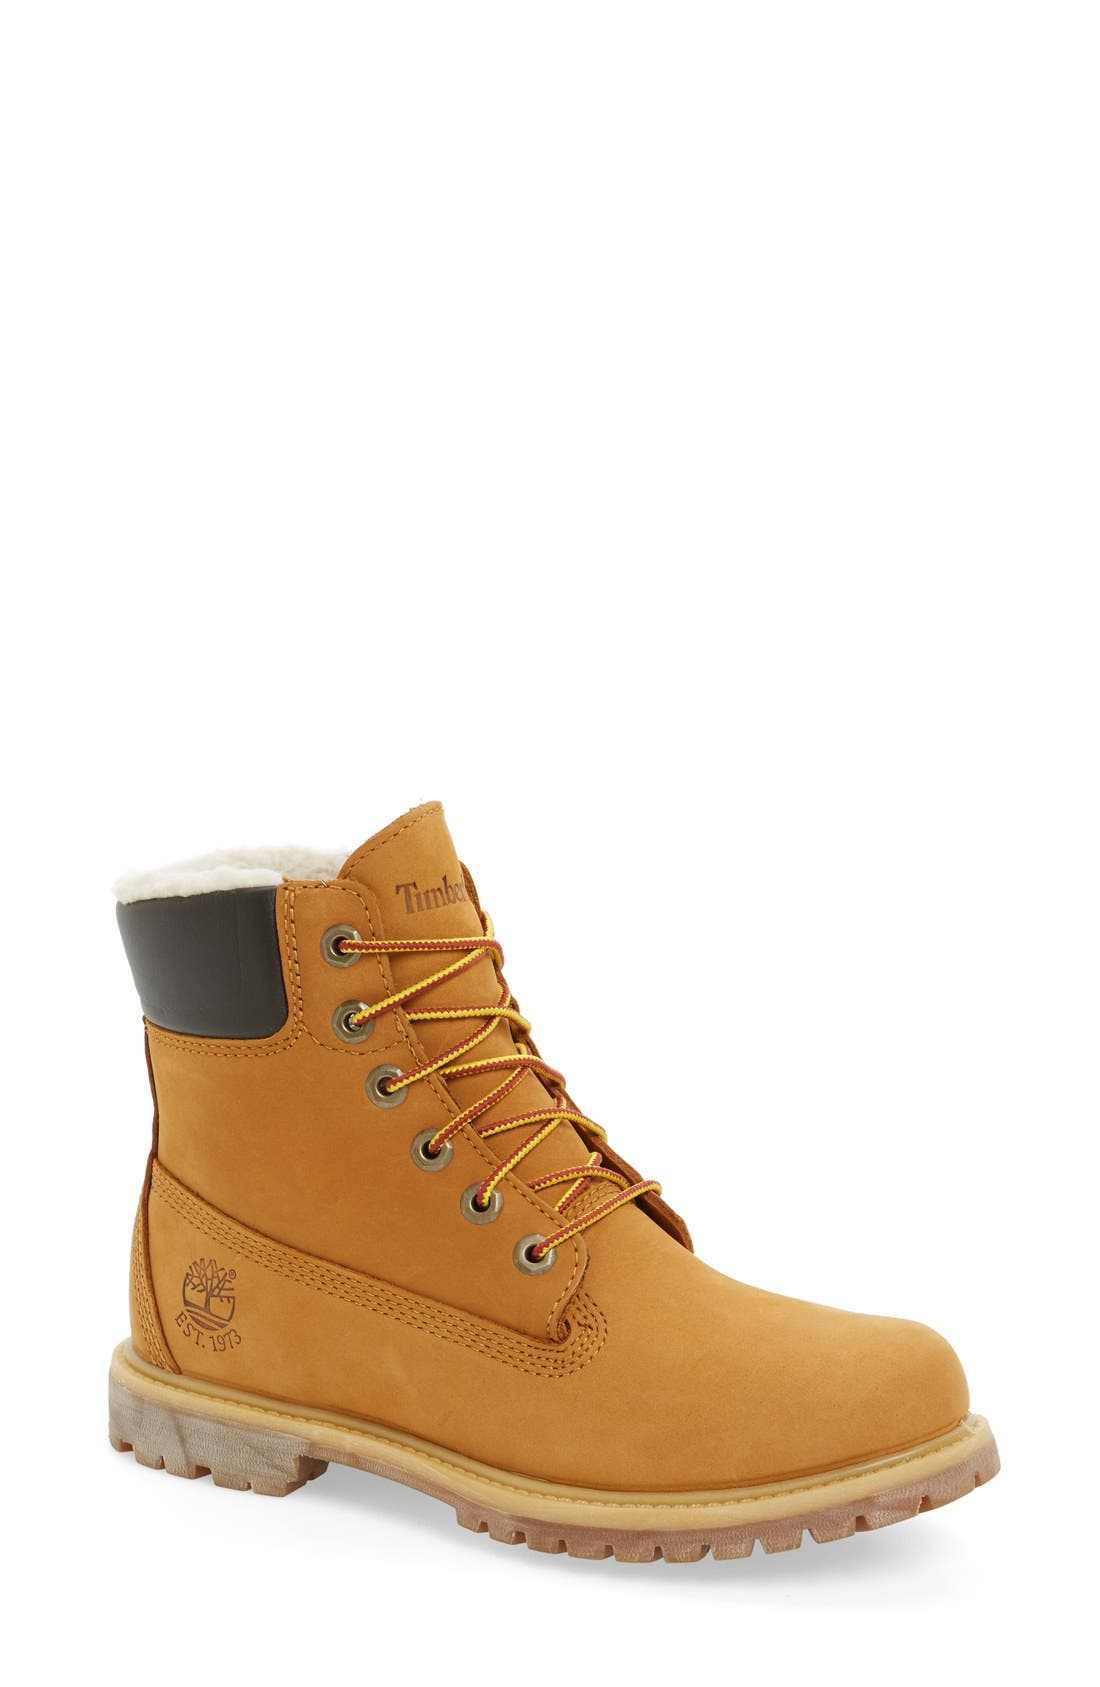 Alternate Image 1 Selected - Timberland 6 Inch Waterproof Boot (Women)